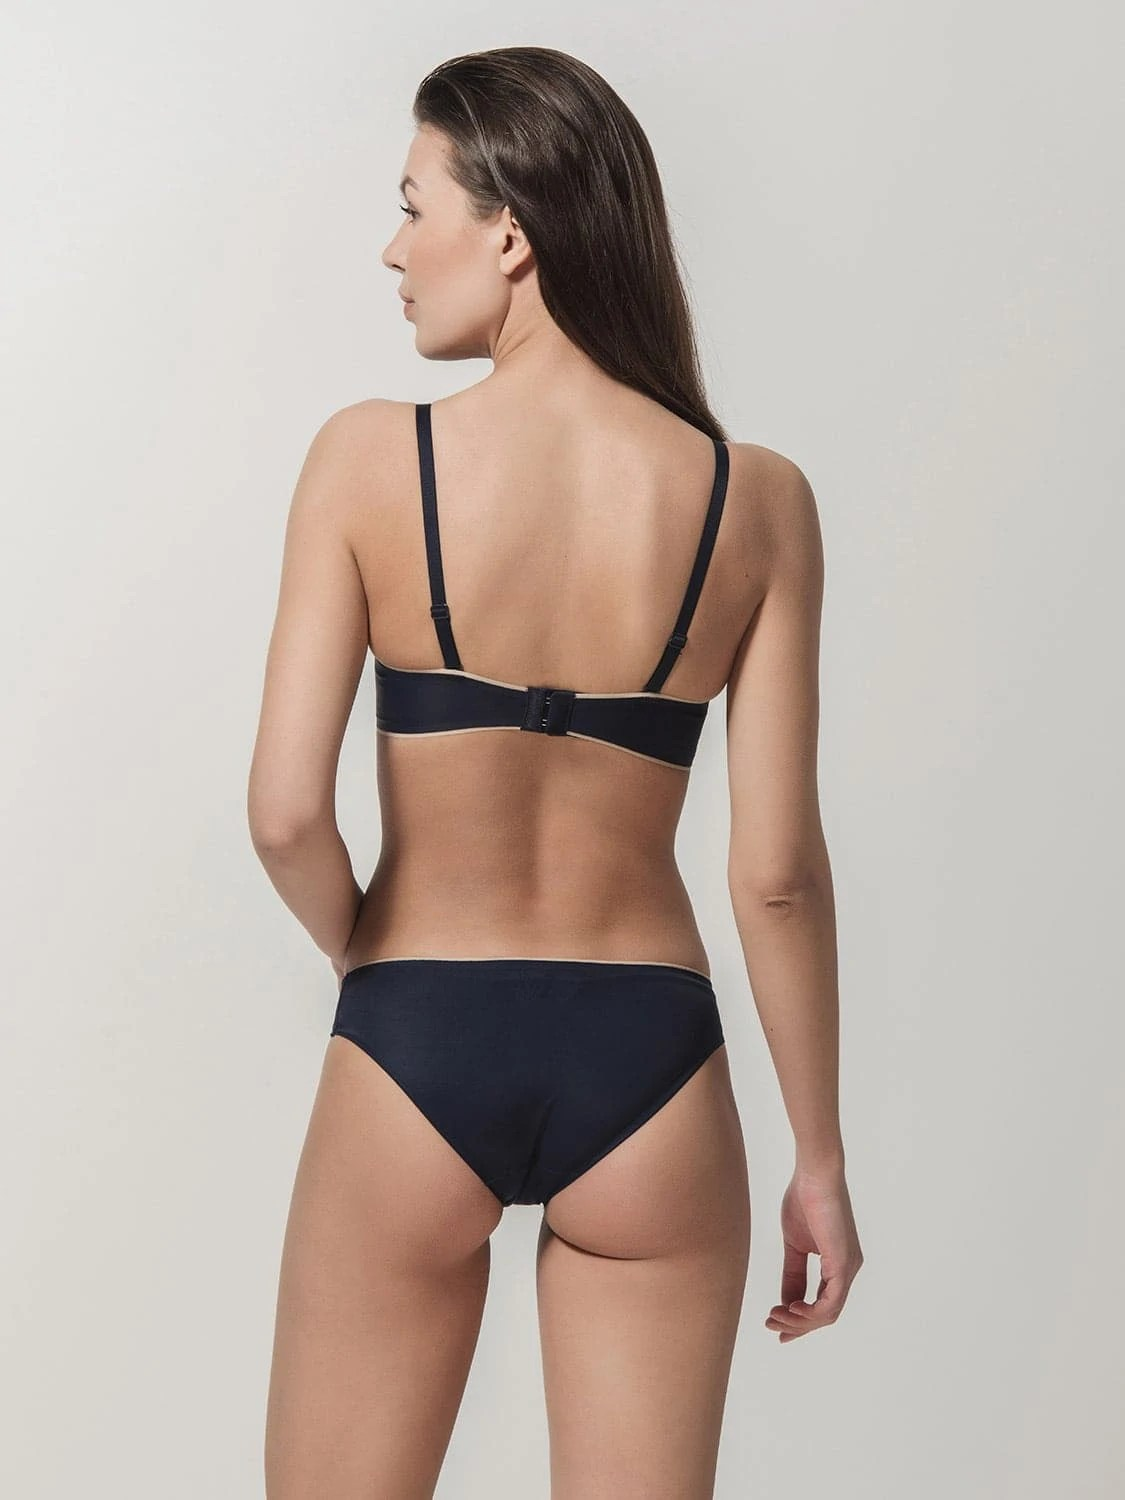 Miracle one 1808 wireless & 2808 brief black back